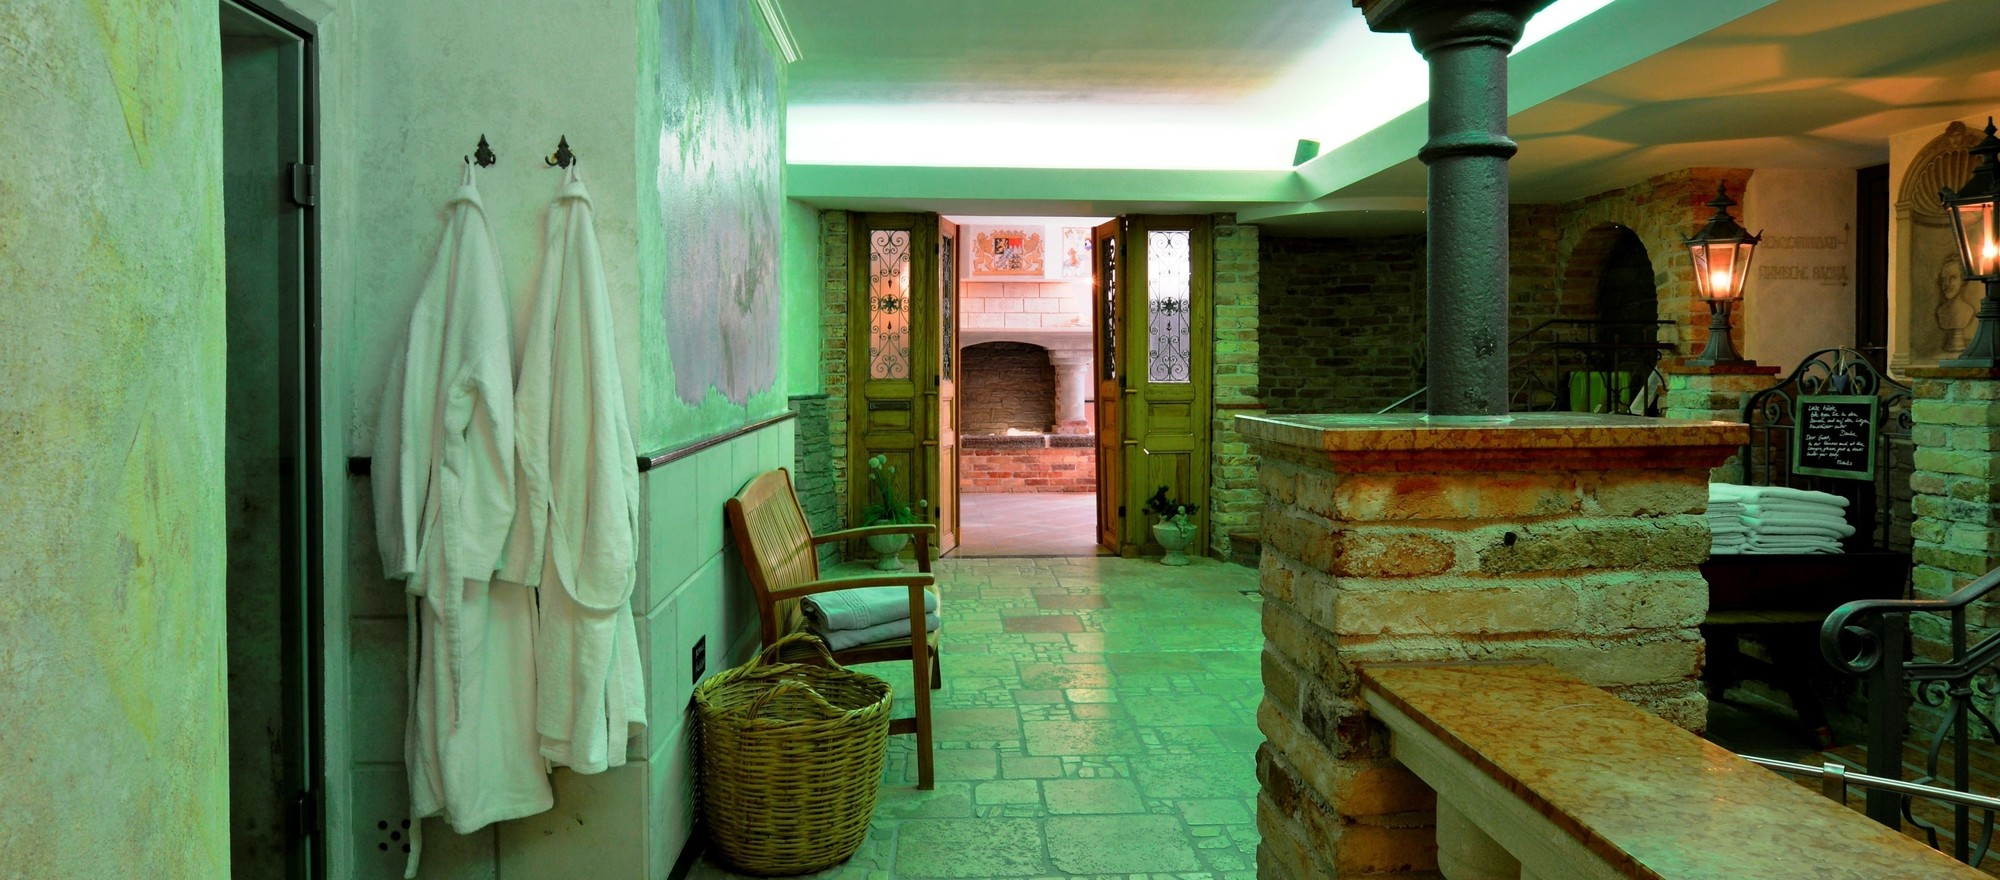 Spa area Palaestra in Ringhotel Alpenhof in Augsburg, hotel in Swabia